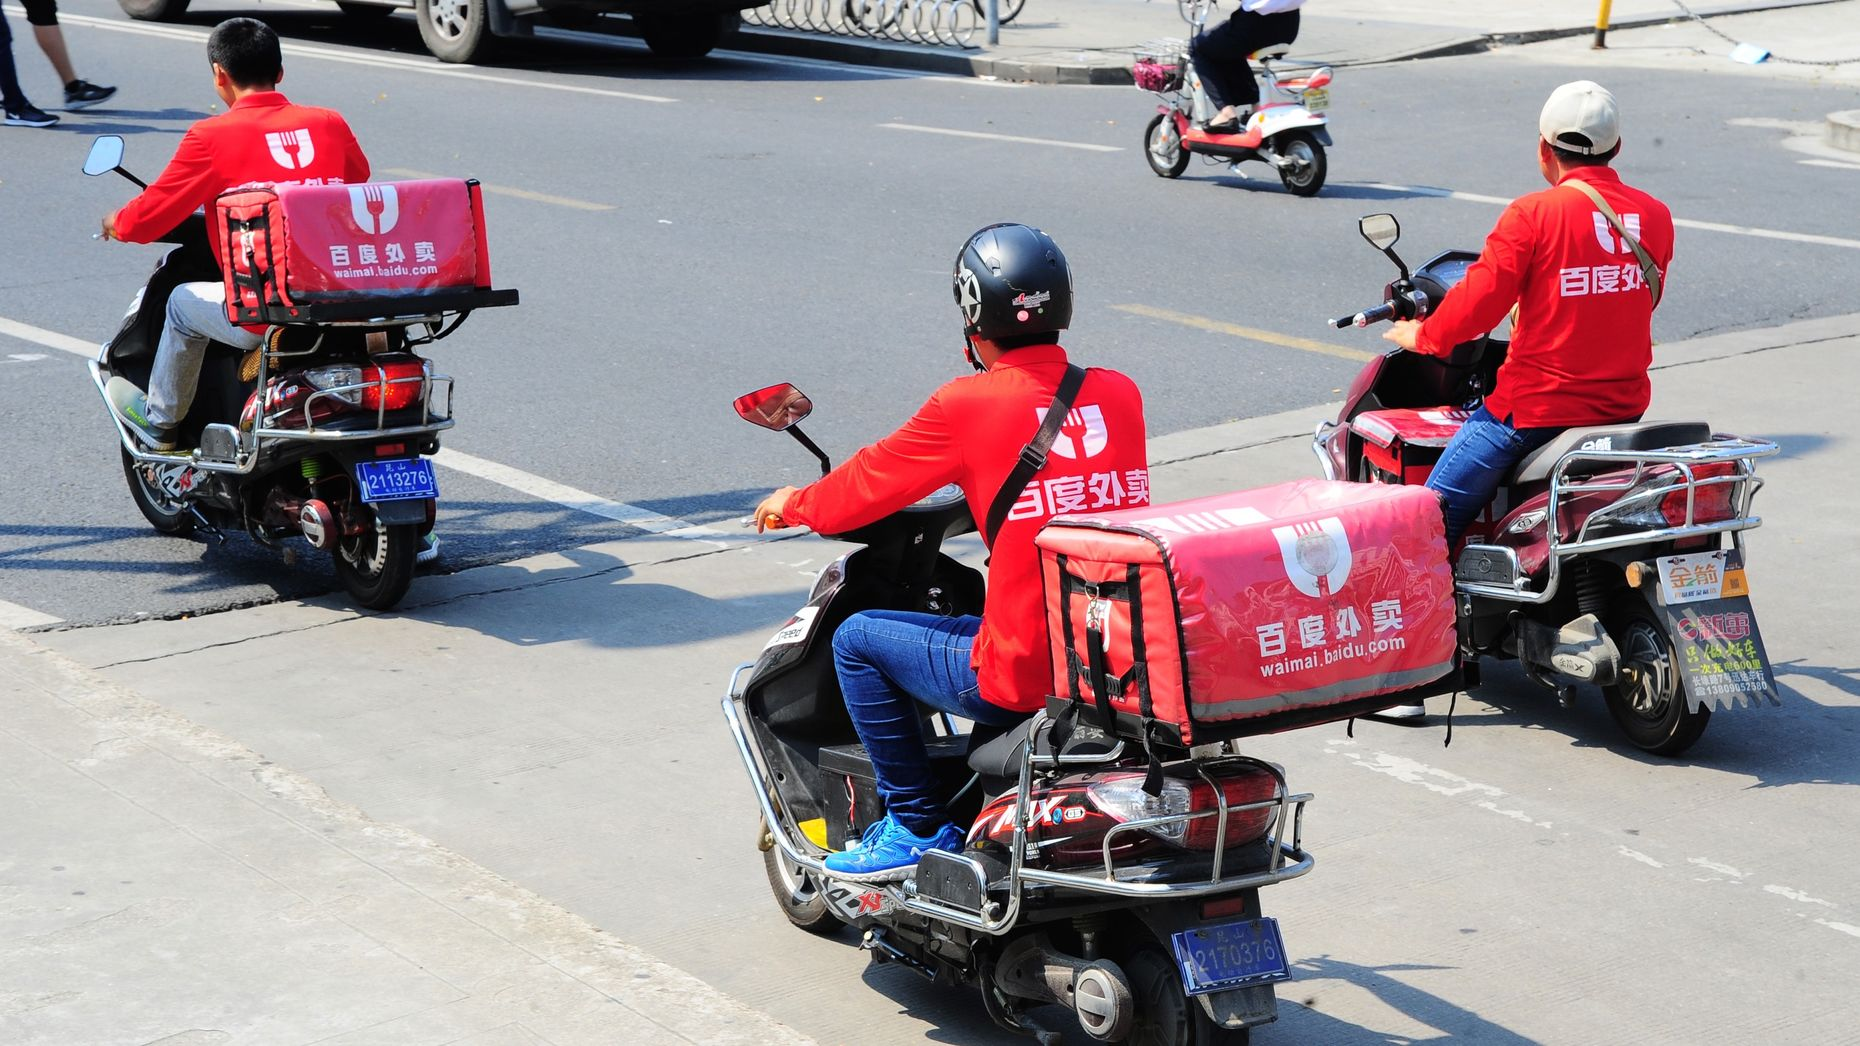 Couriers of Baidu Waimai on the road in Taicang city. Photo by AP.